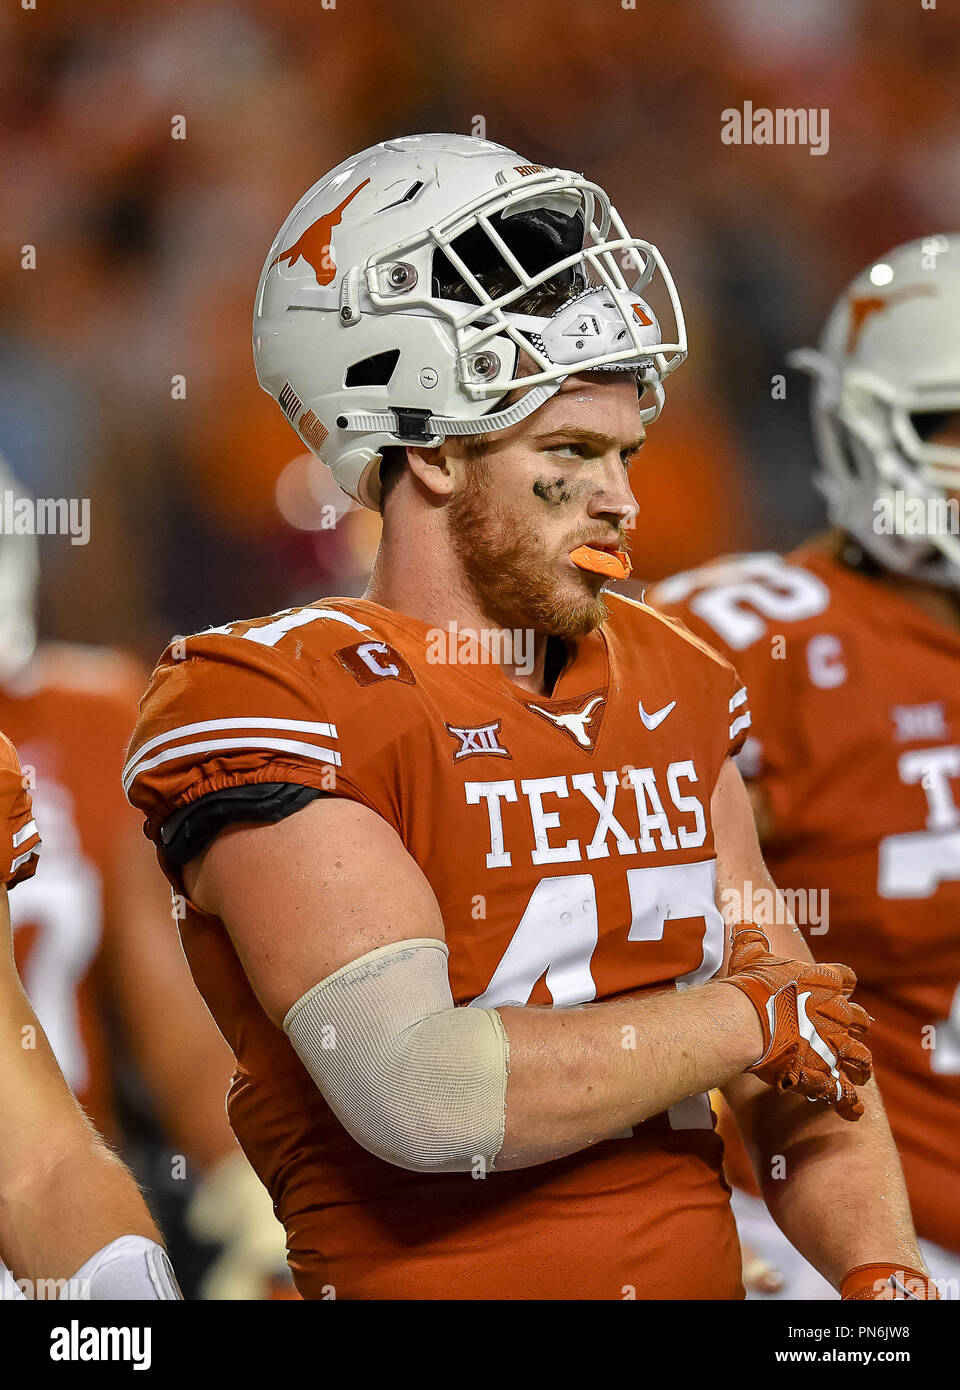 Austin Tx Usa 15th Sep 2018 Ut Tight End Andrew Beck Lining